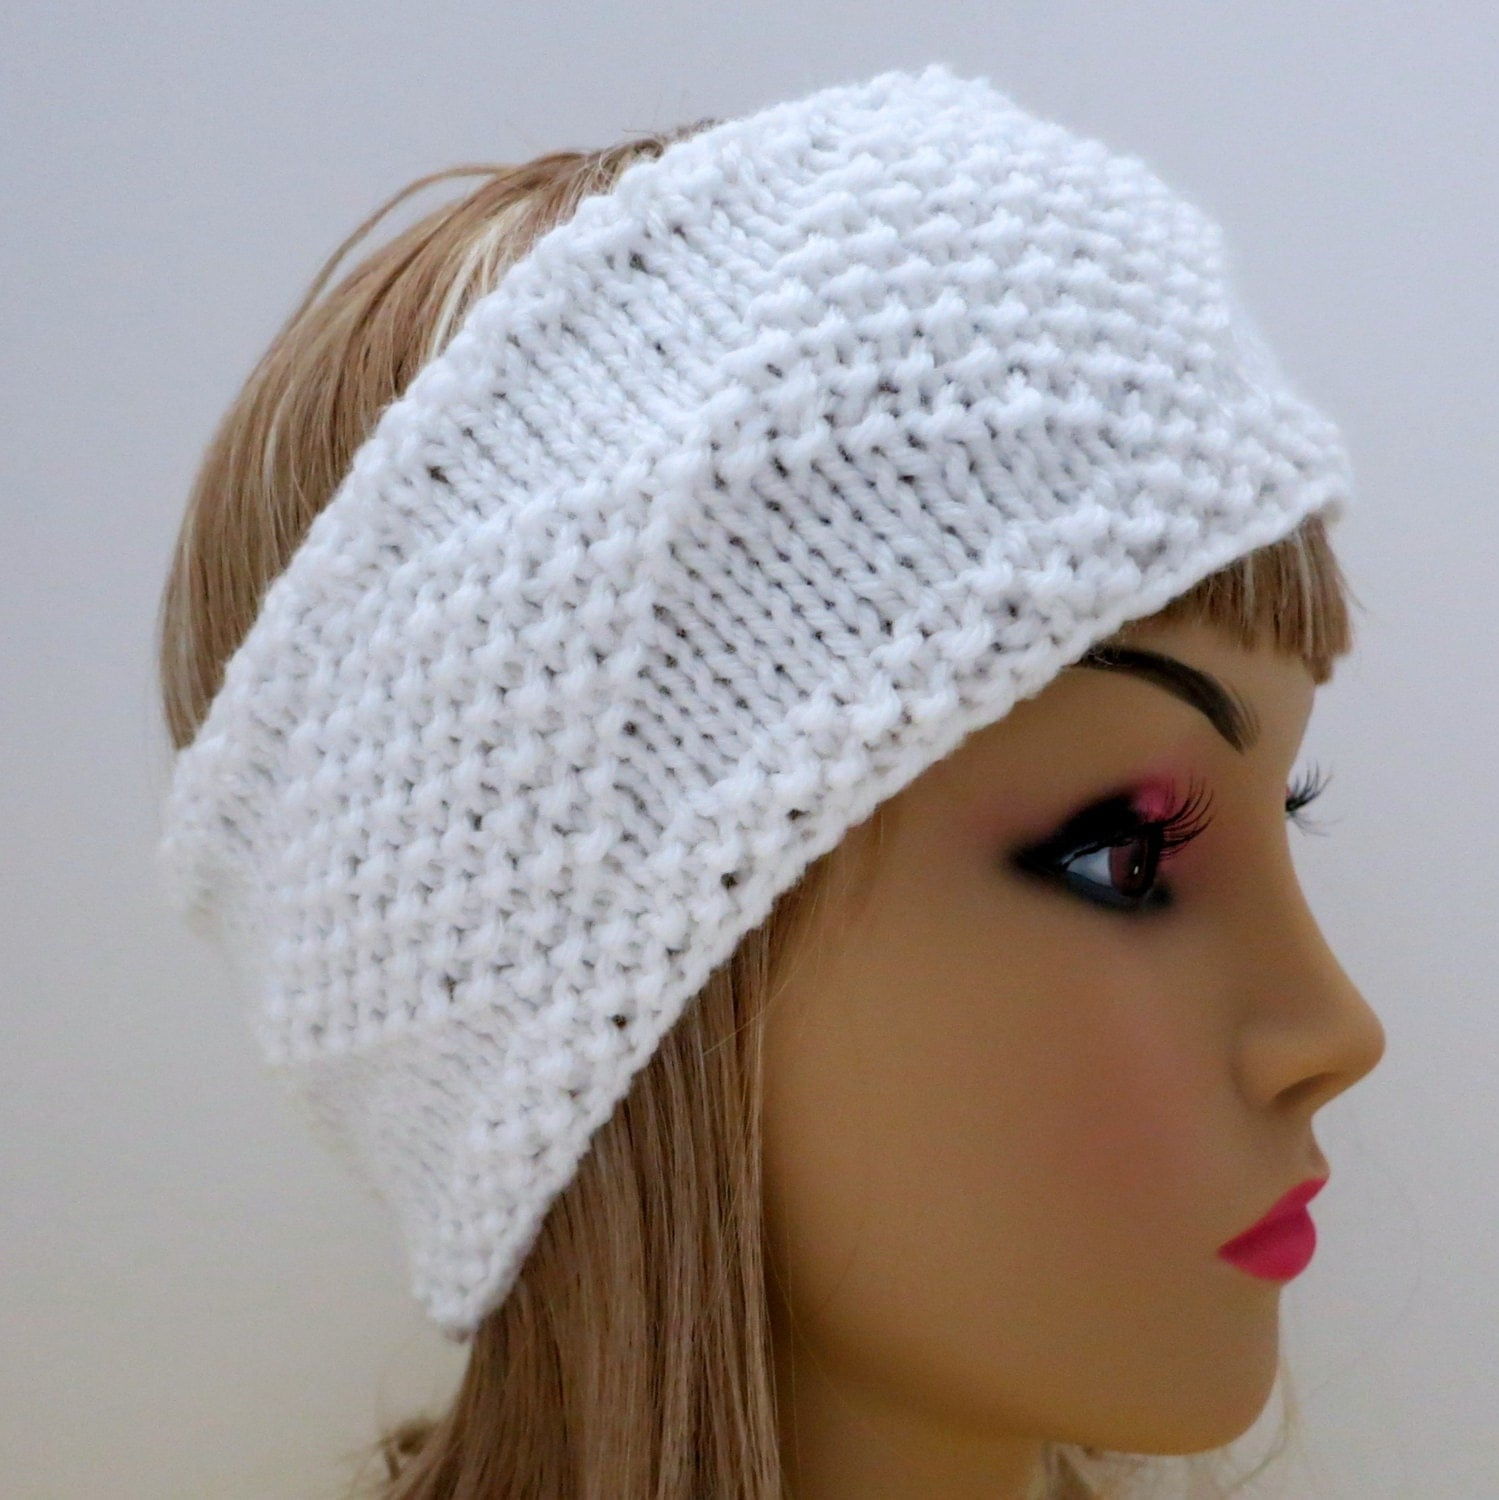 Knitted Baby Headband Pattern Easy : PDF 129 Pattern Headband Knit Diamonds Knitting Pattern PDF